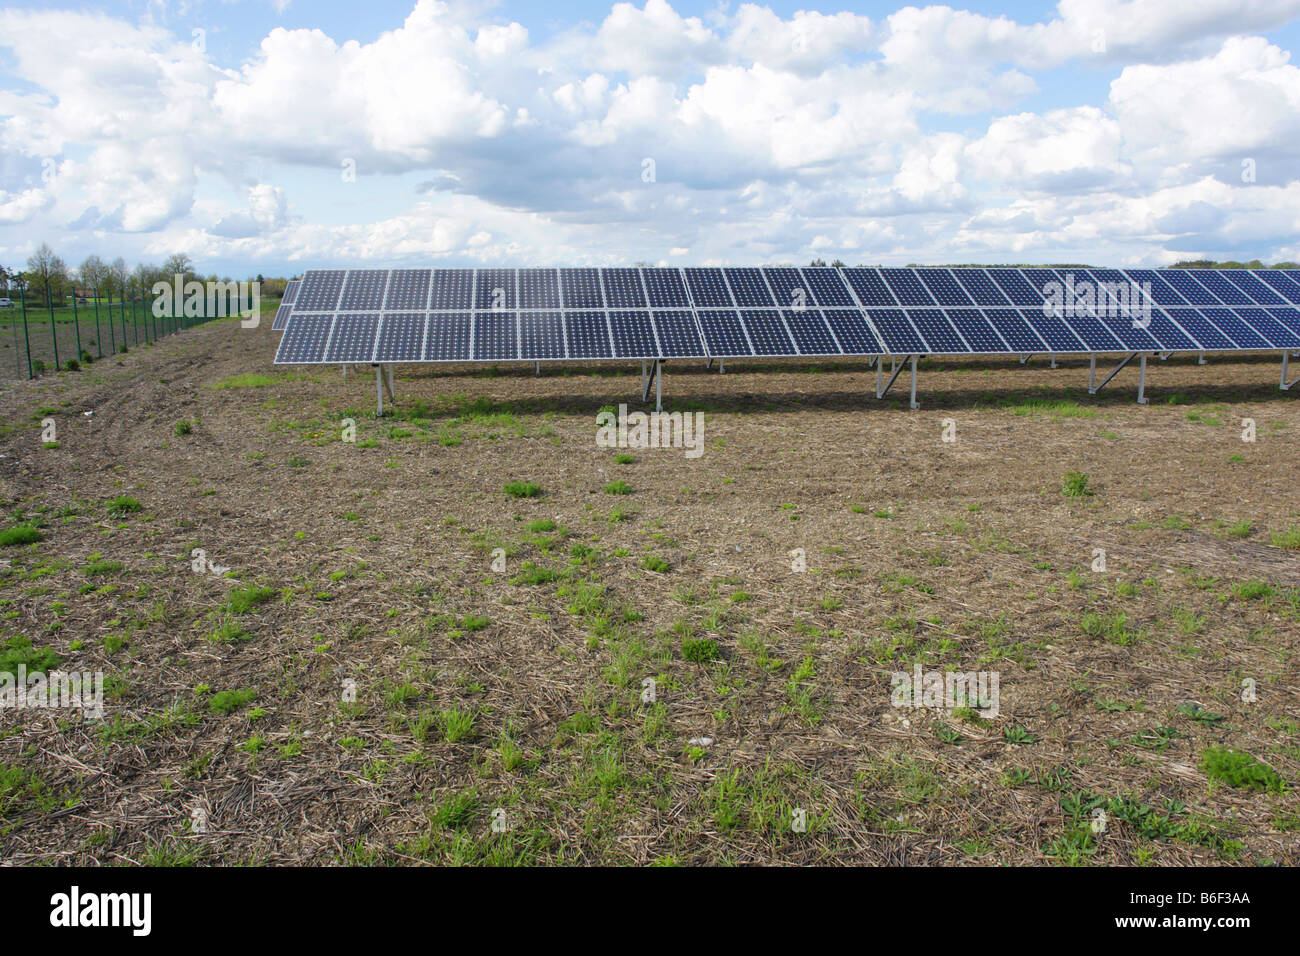 solar collector energy plant outside - Stock Image